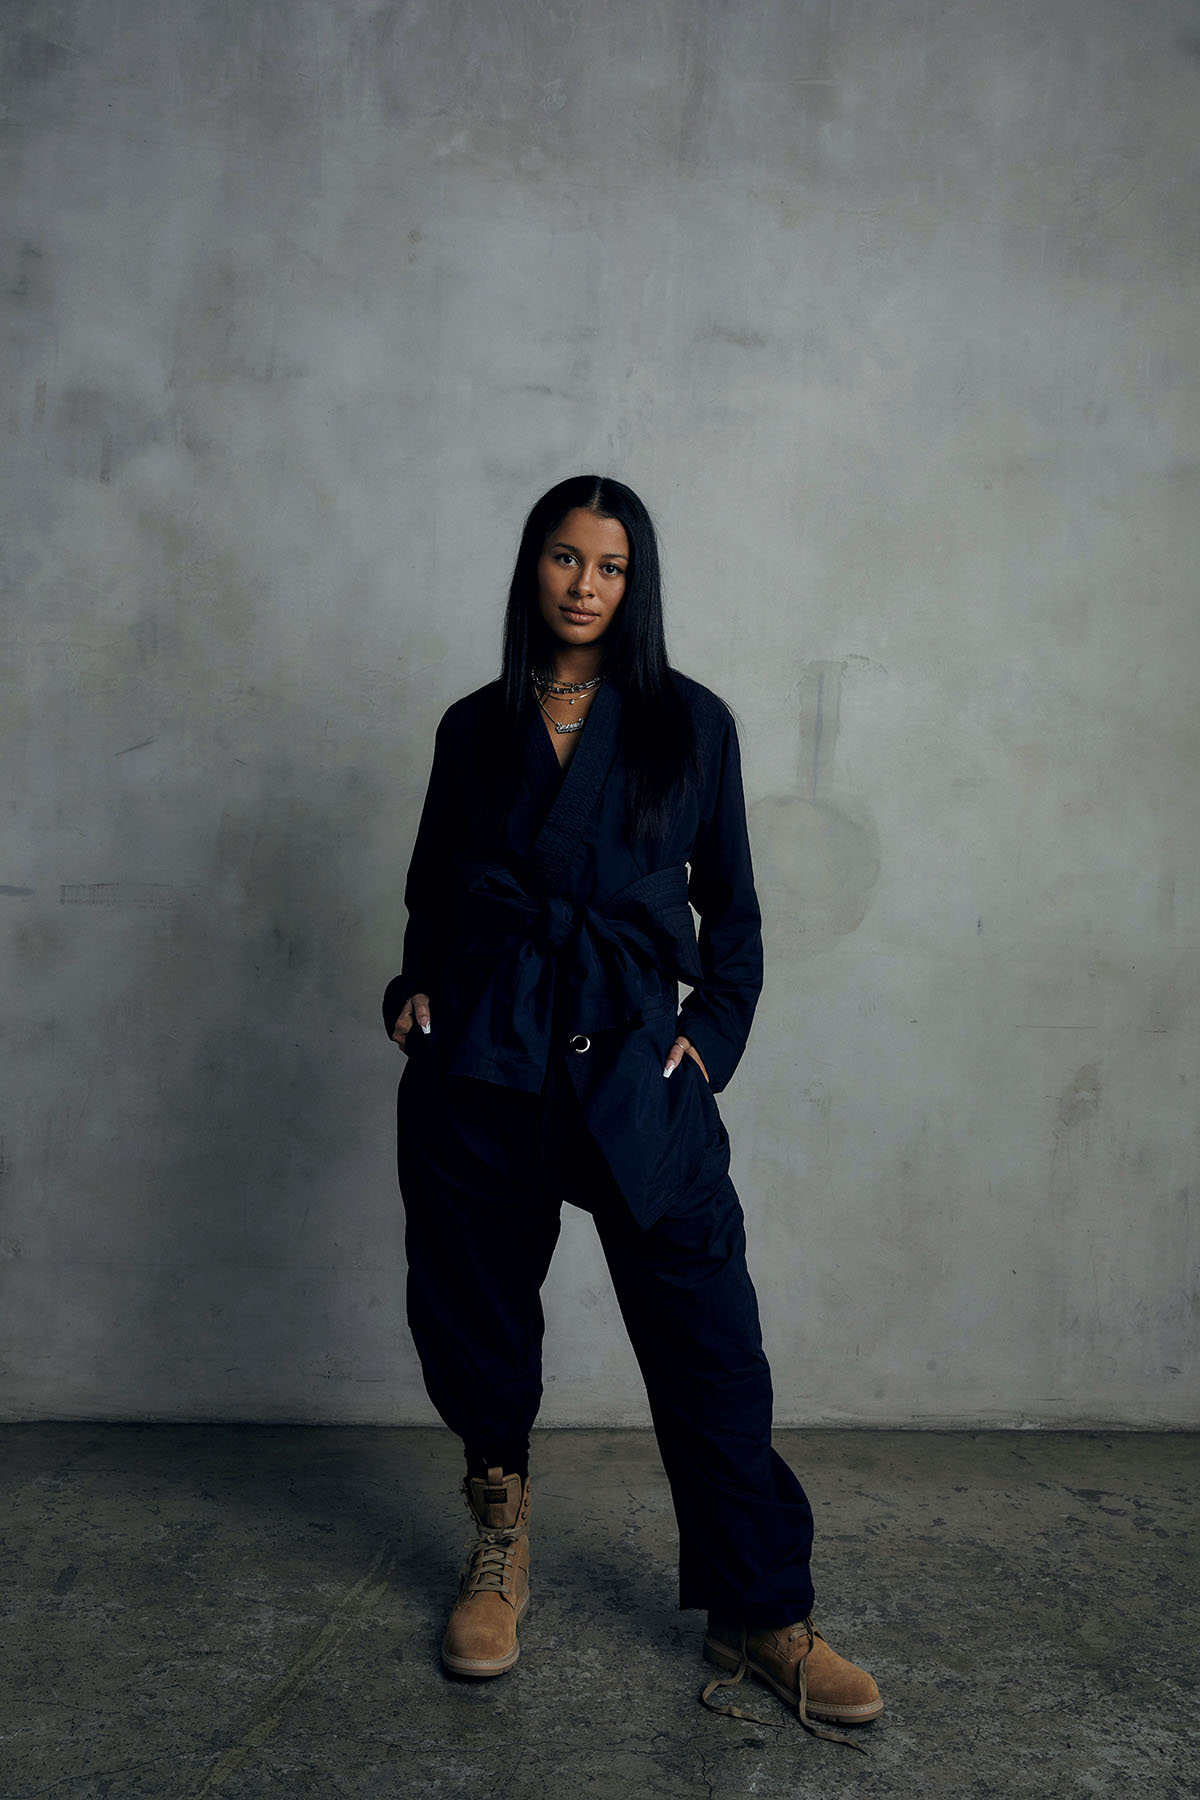 G-Star Raw Resort 2021 Fashion Show Photos